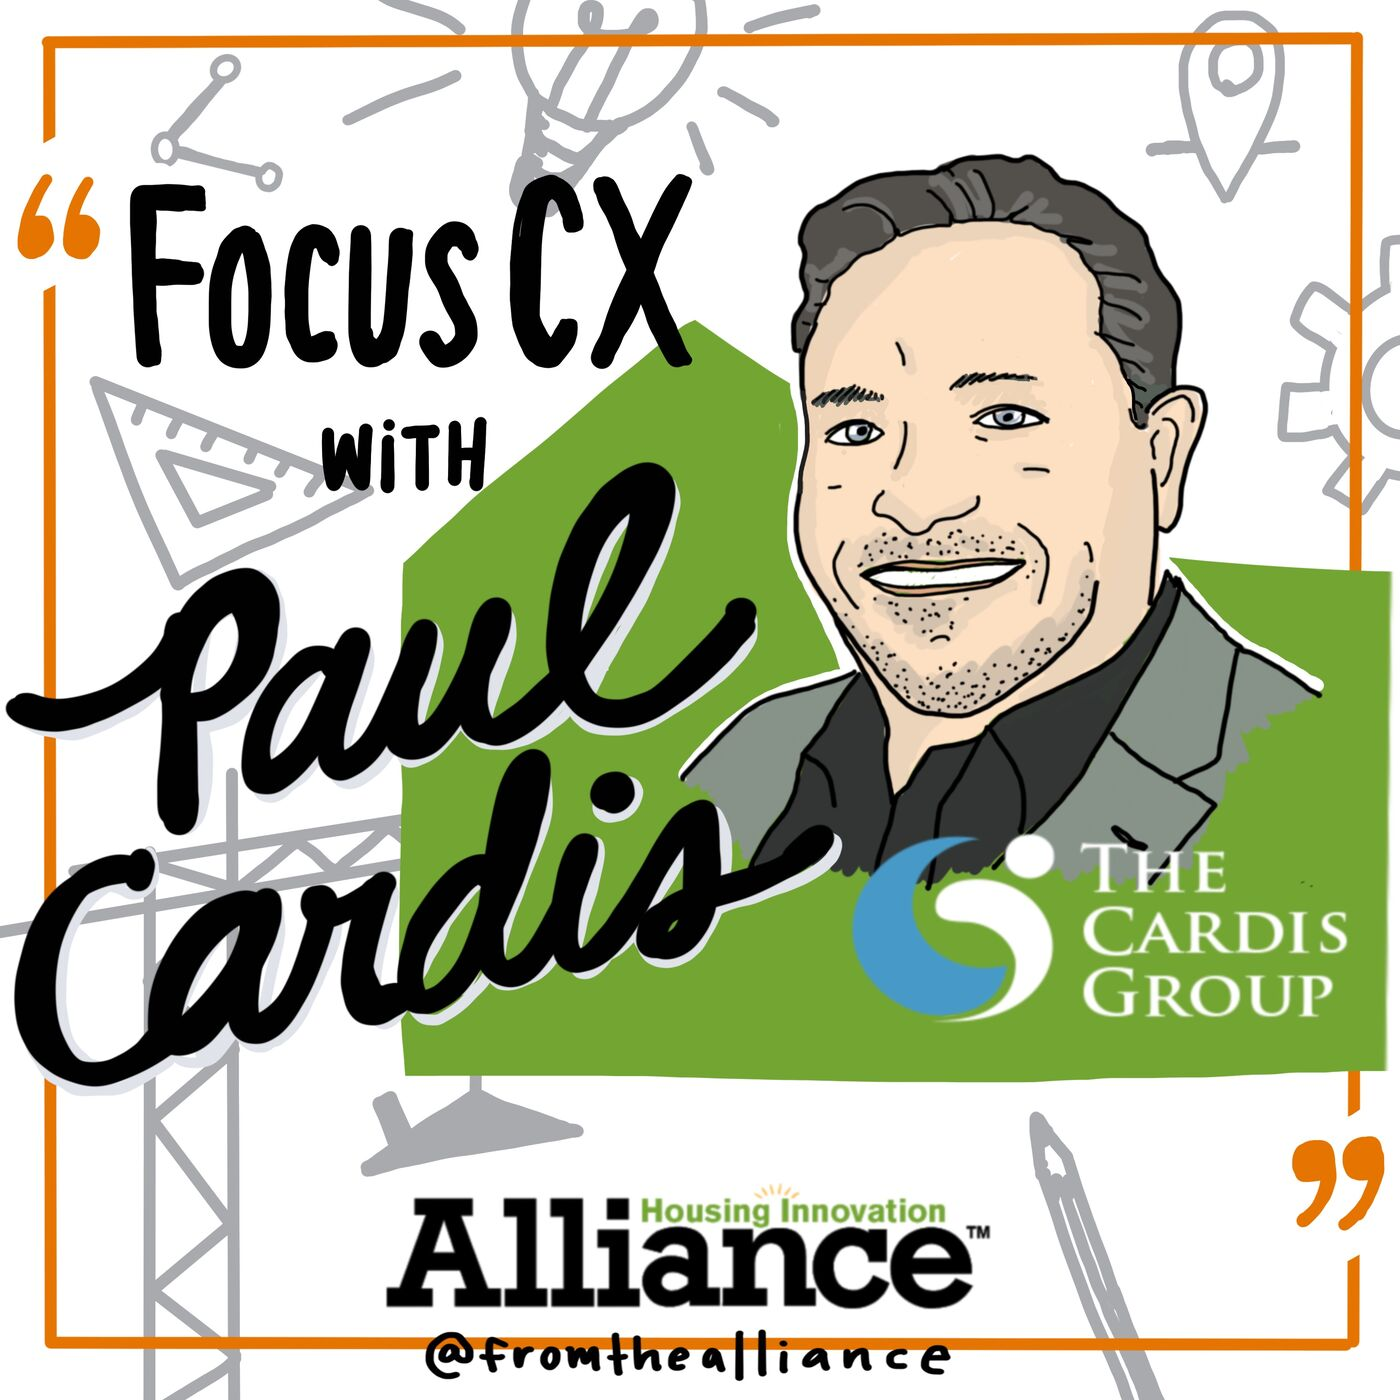 FocusCX with Paul Cardis: Chip Bell on Improving the Customer Experience through Personalization + Inclusion